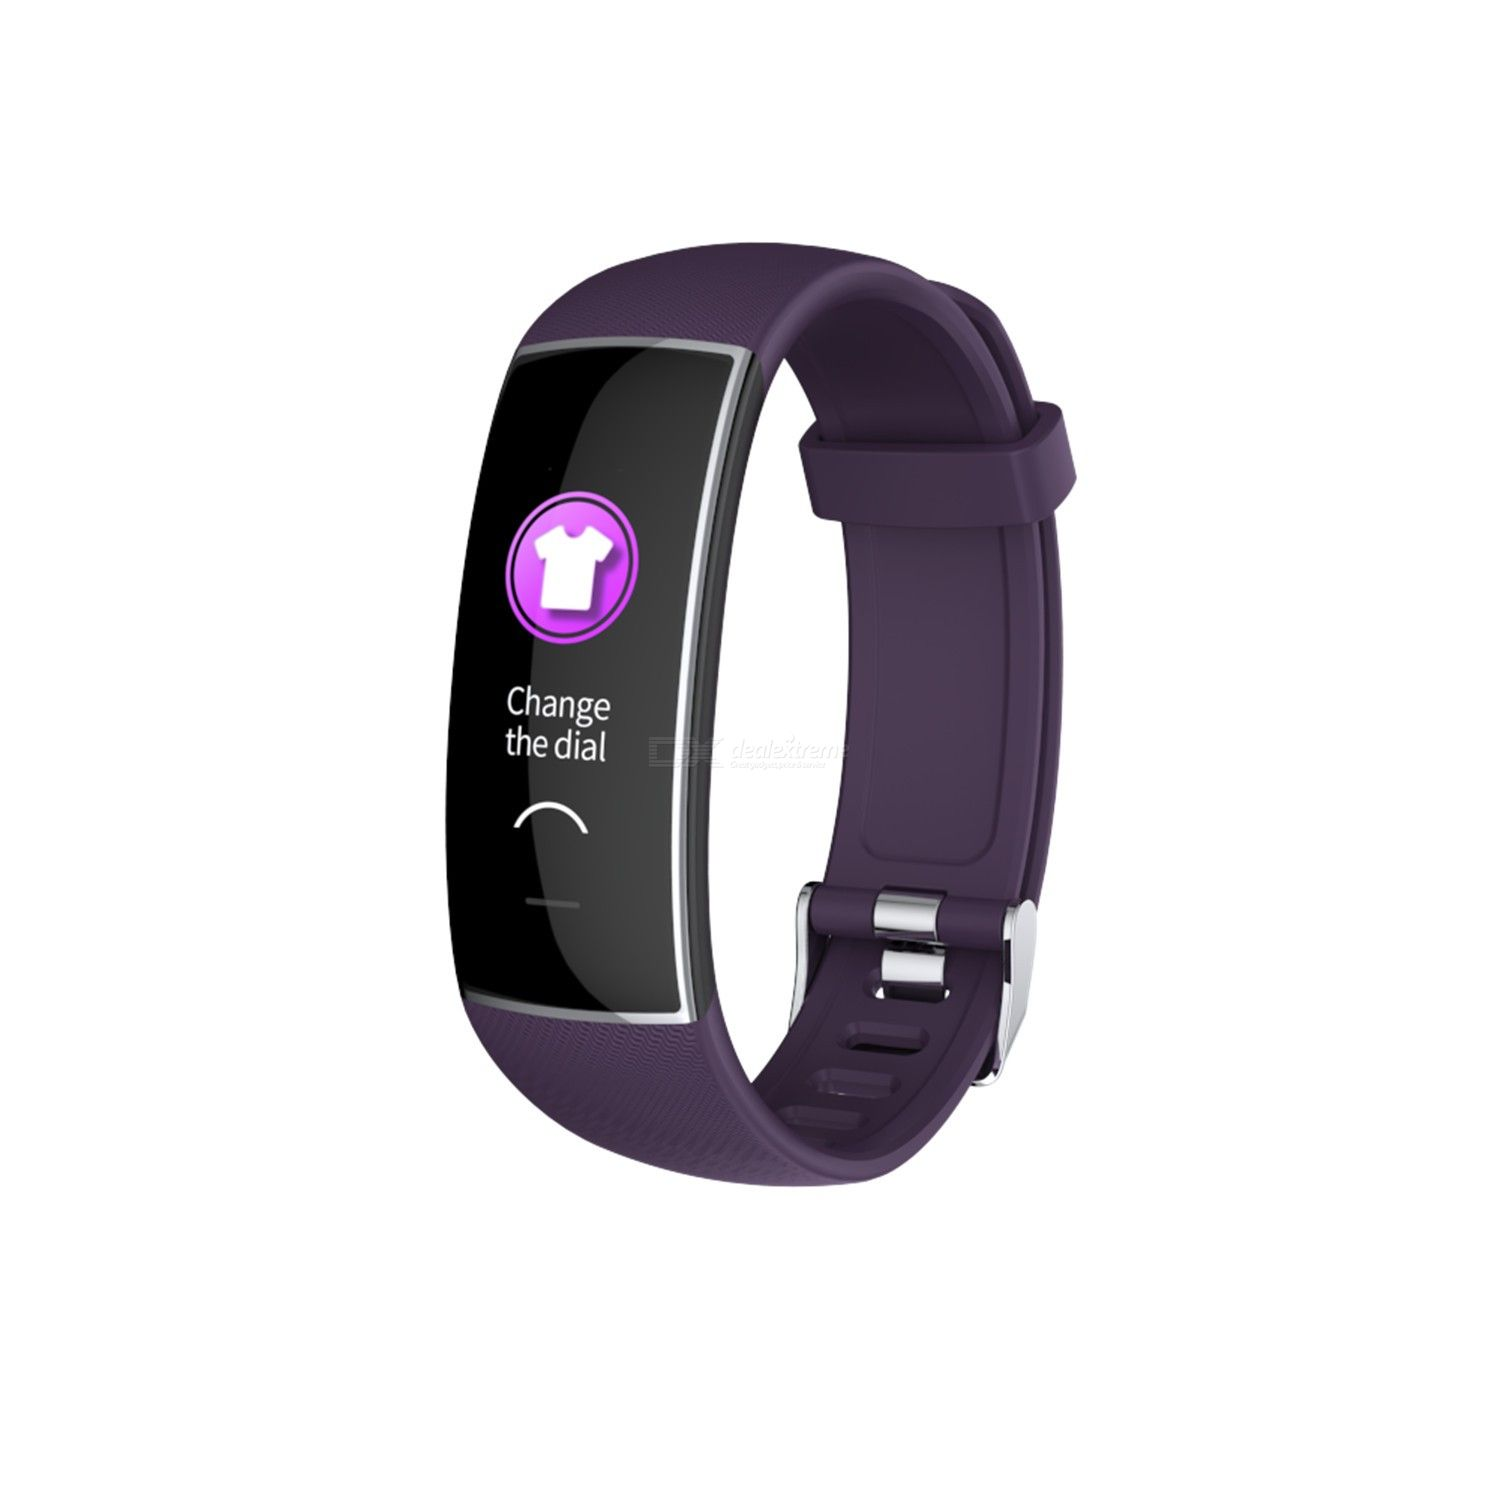 Kh20 smart Bracelet Bluetooth 5.0 exercise heart rate blood pressure sleep monitoring waterproof